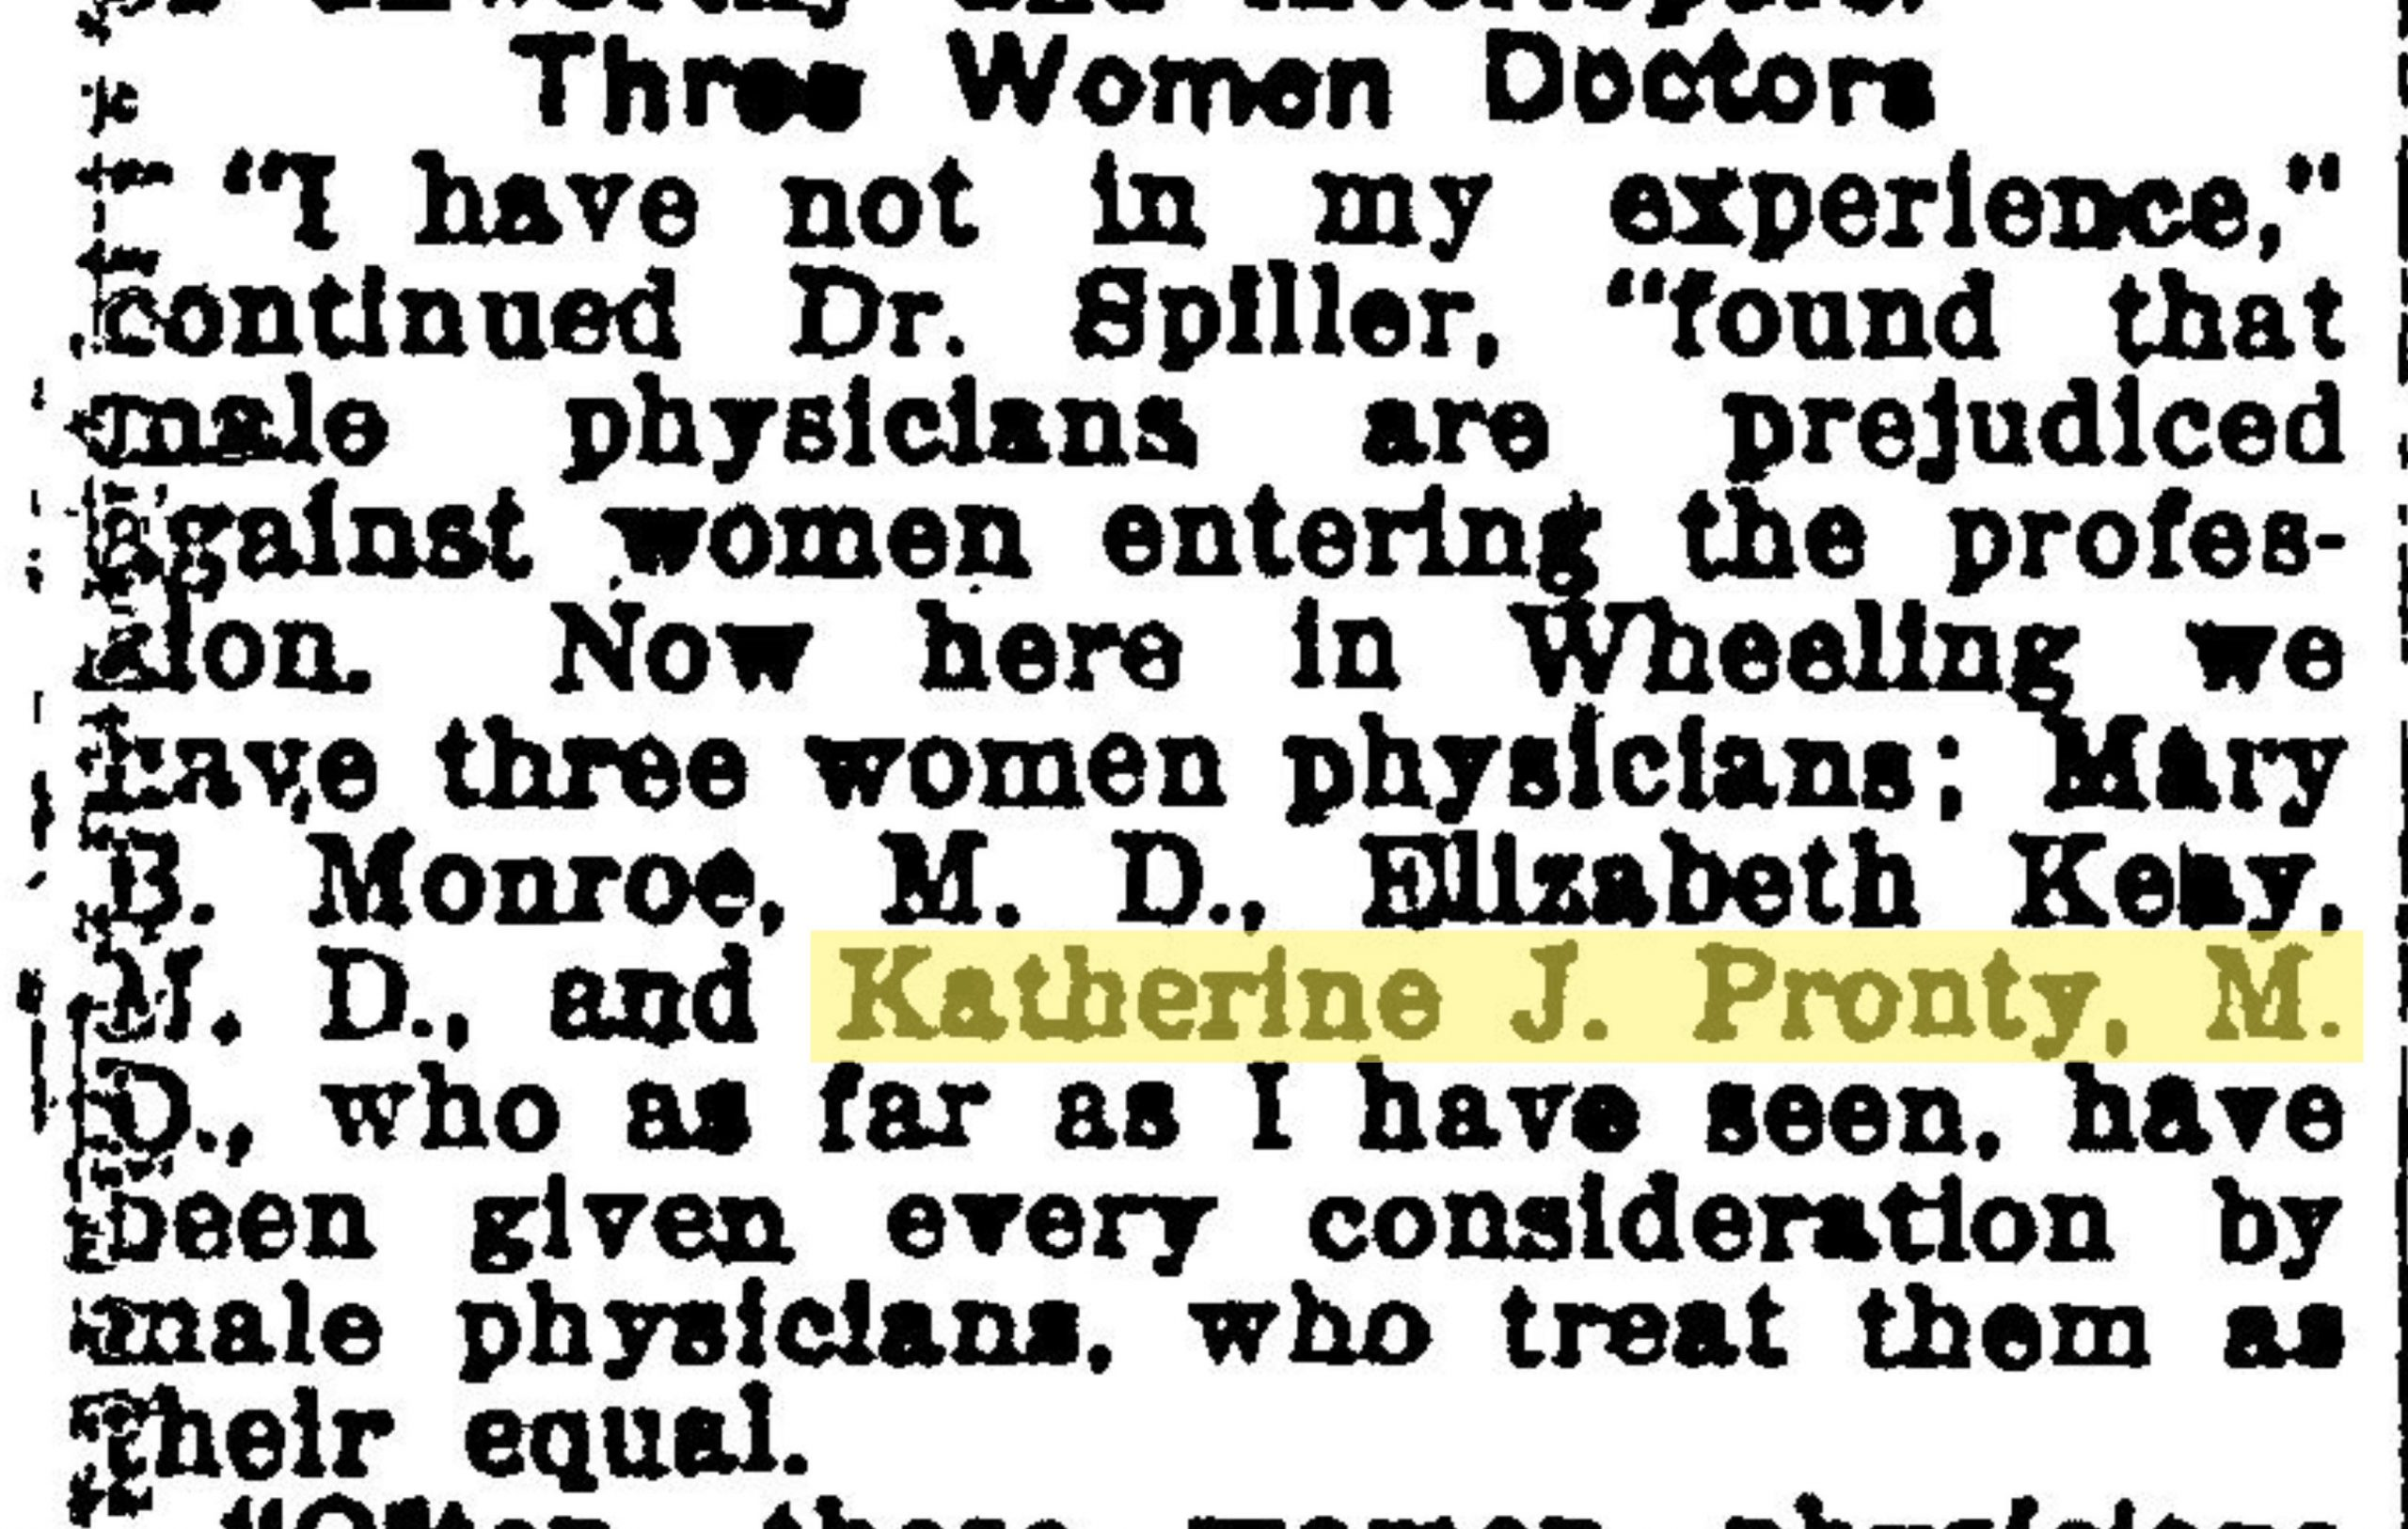 Article by Dr. H.F. Spillers